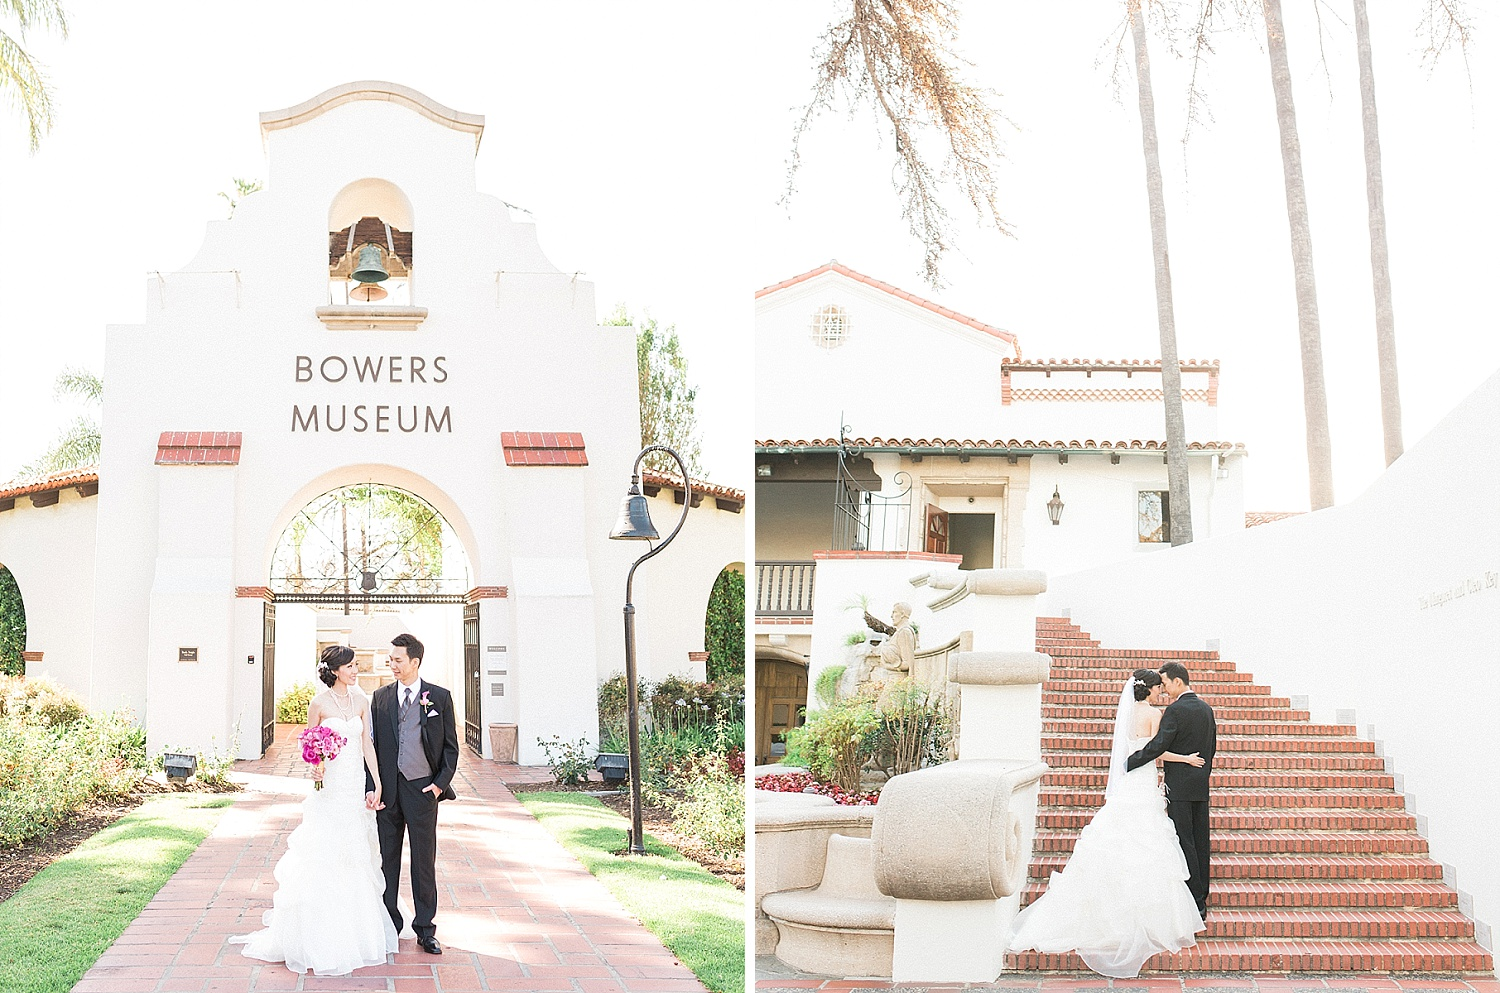 Santa_Ana_California_bowers_museum_wedding_Dallas_destination_photographer.jpg